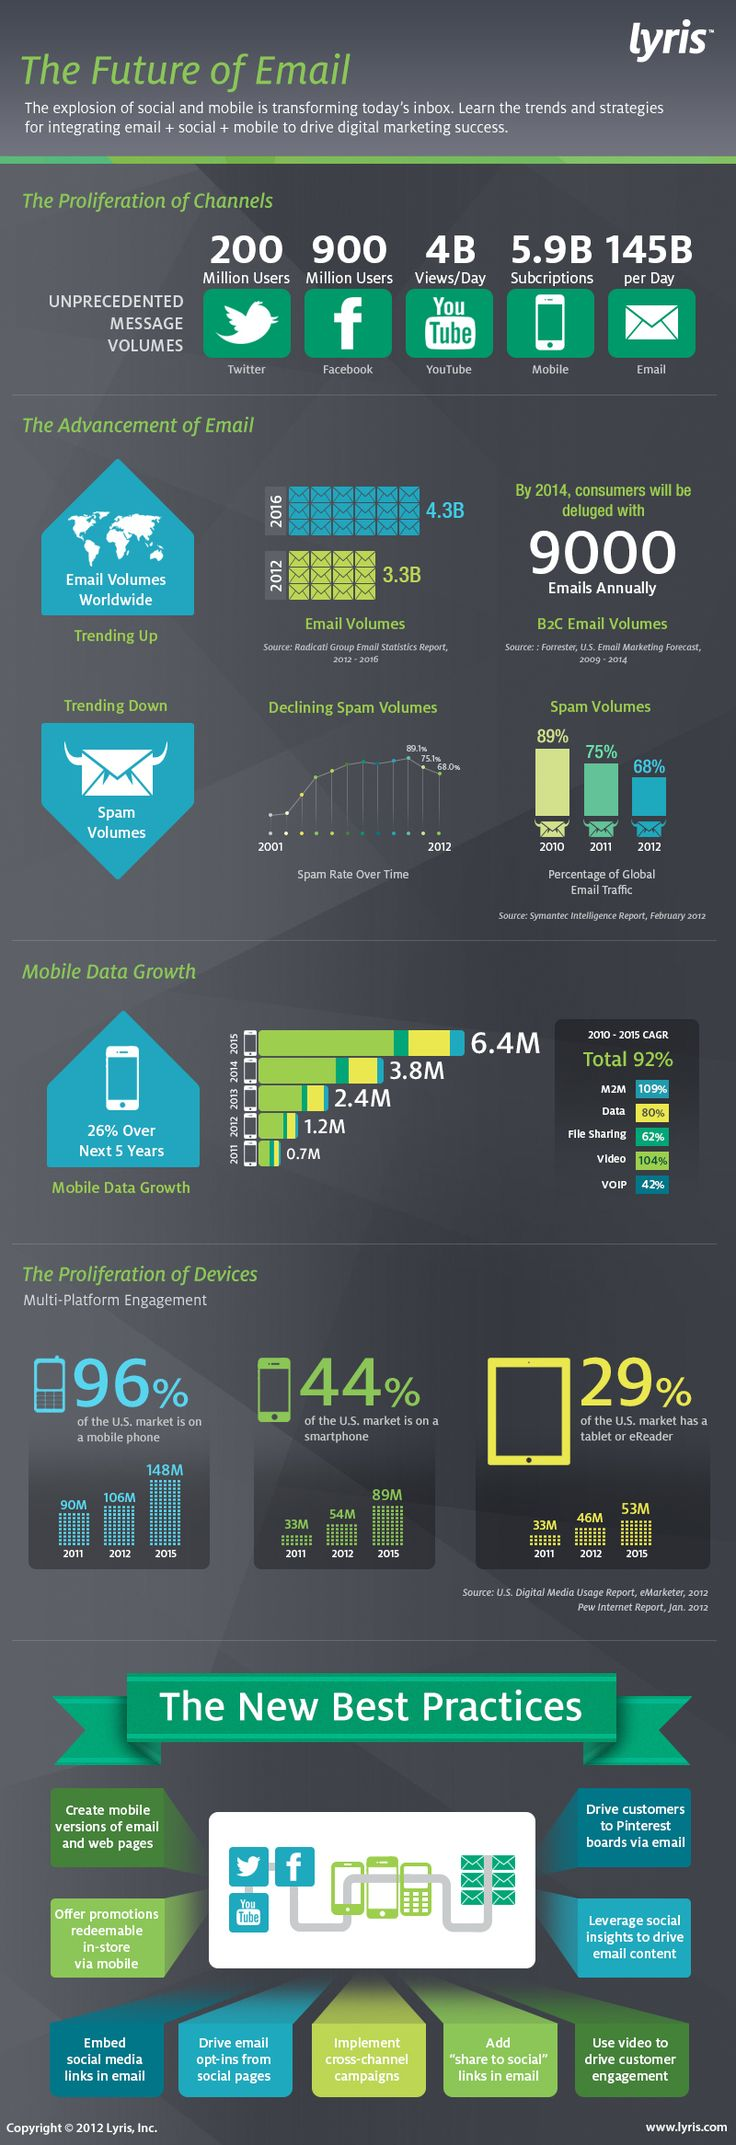 This infographic from Lyris looks at the future of email. They project that by 2014 the average consumer will receive 9000 emails annually. Apart of statistics and preductions, they take a look at the new best practices of integrating mobile, social and multimedia in email campaigns. #infographic #2012 #stats